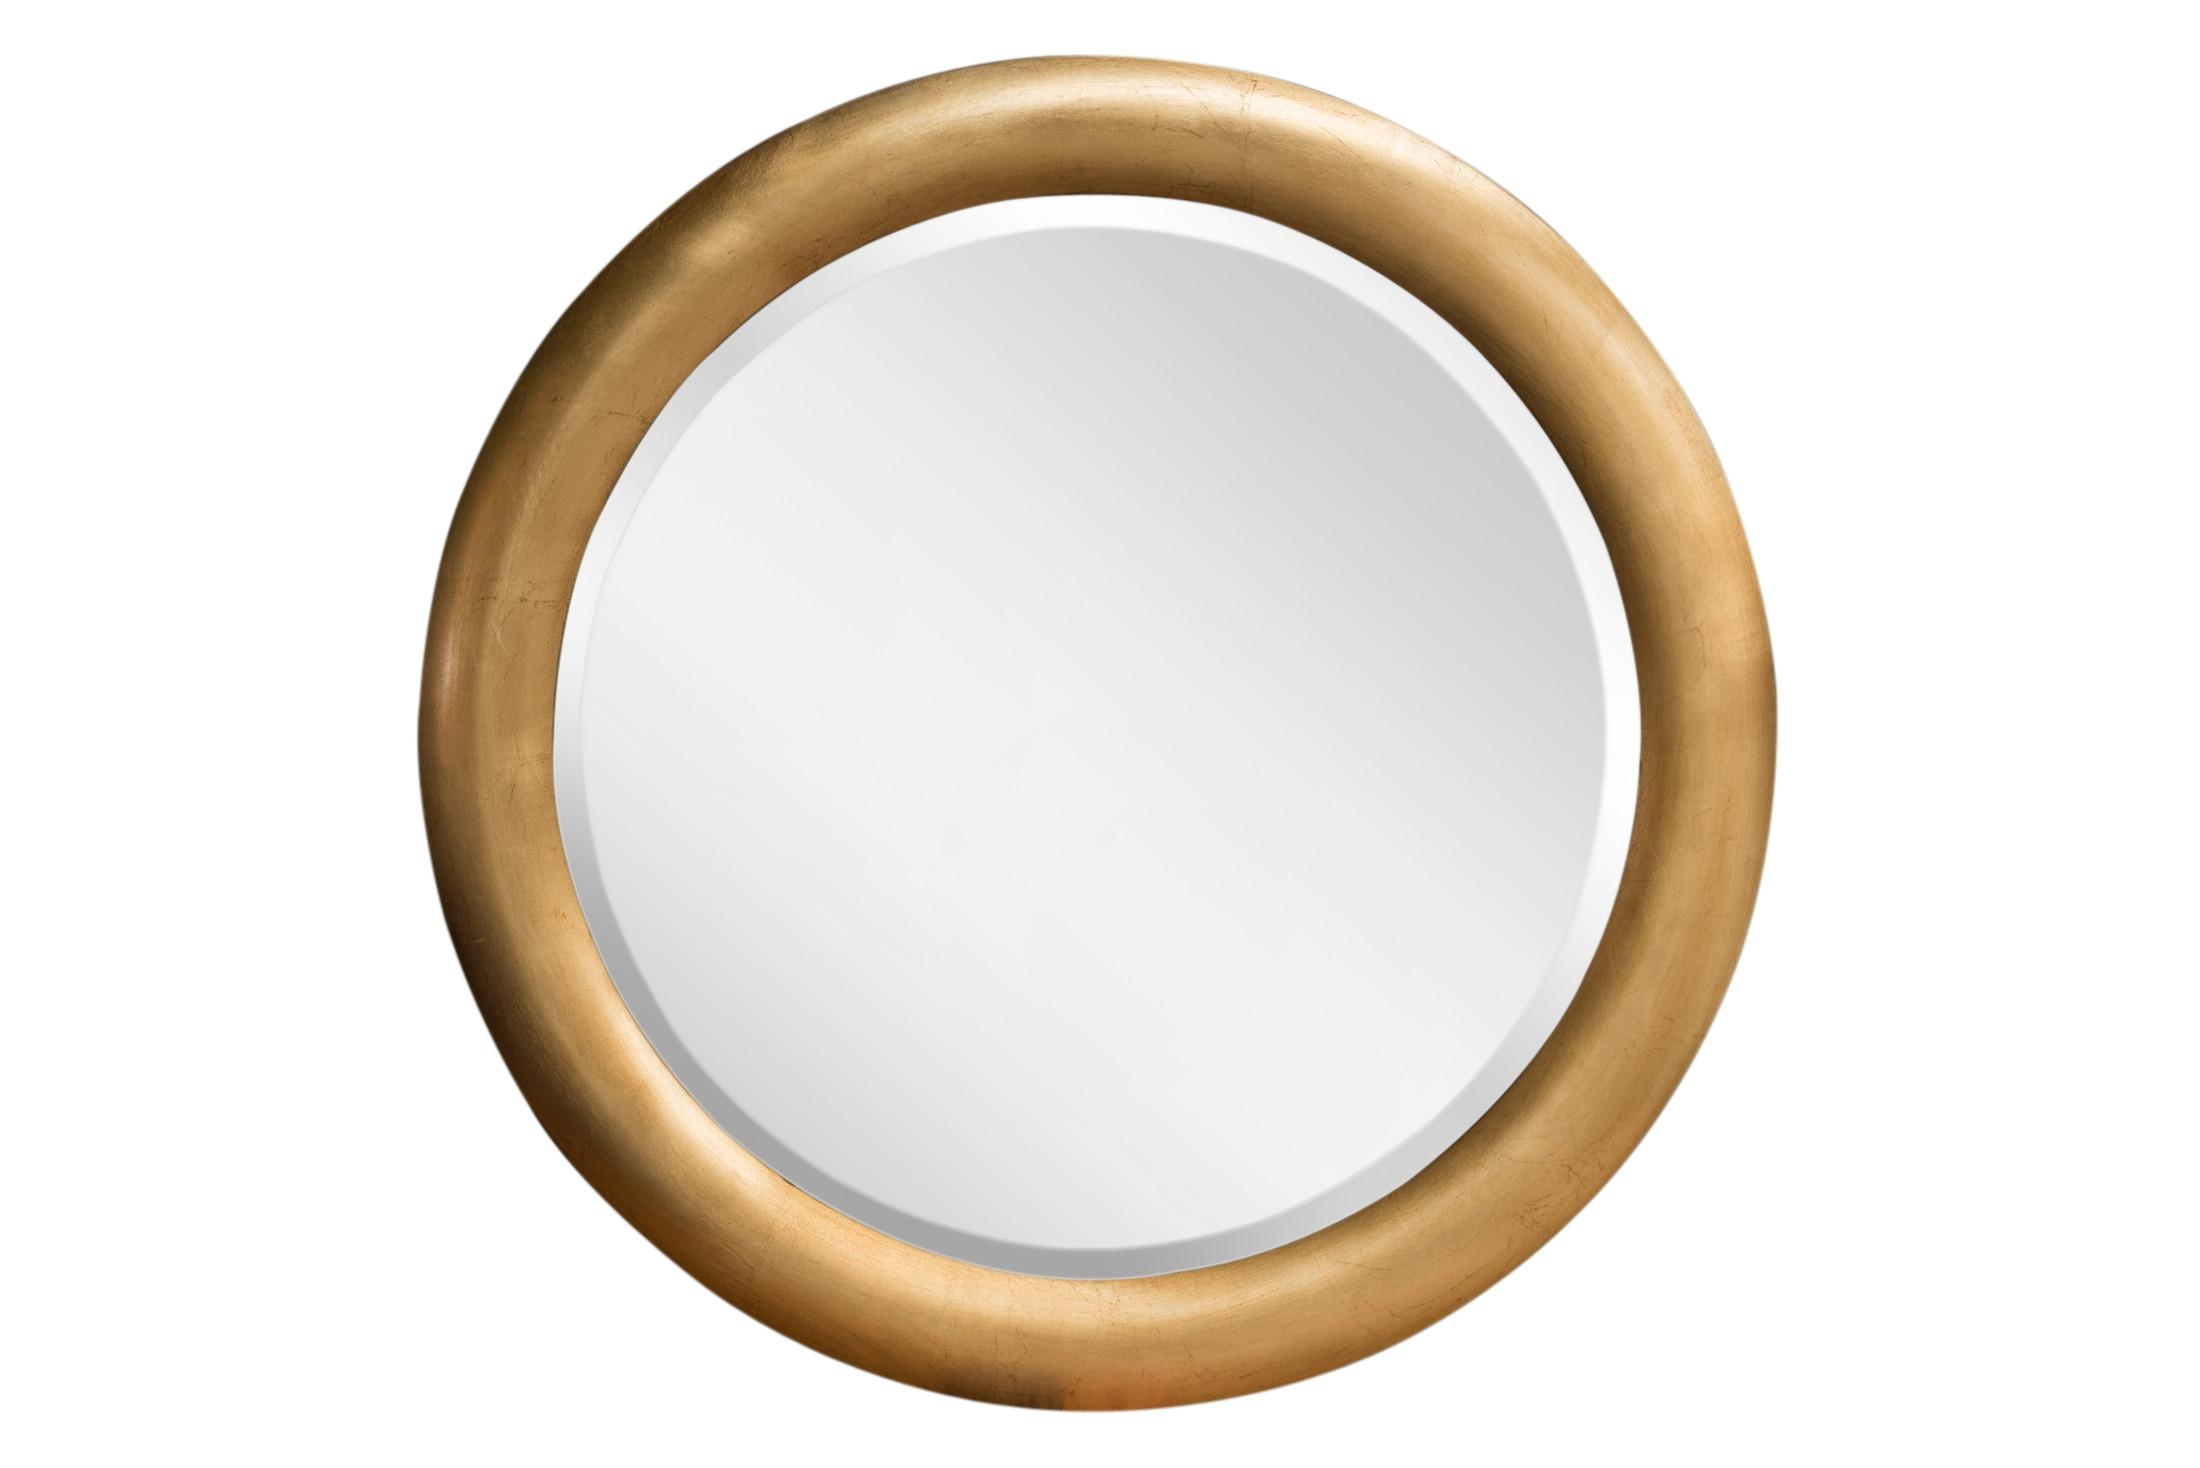 Infinity Round Mirror Gold Leaf Pertaining To Gold Oval Mirrors (Image 11 of 20)